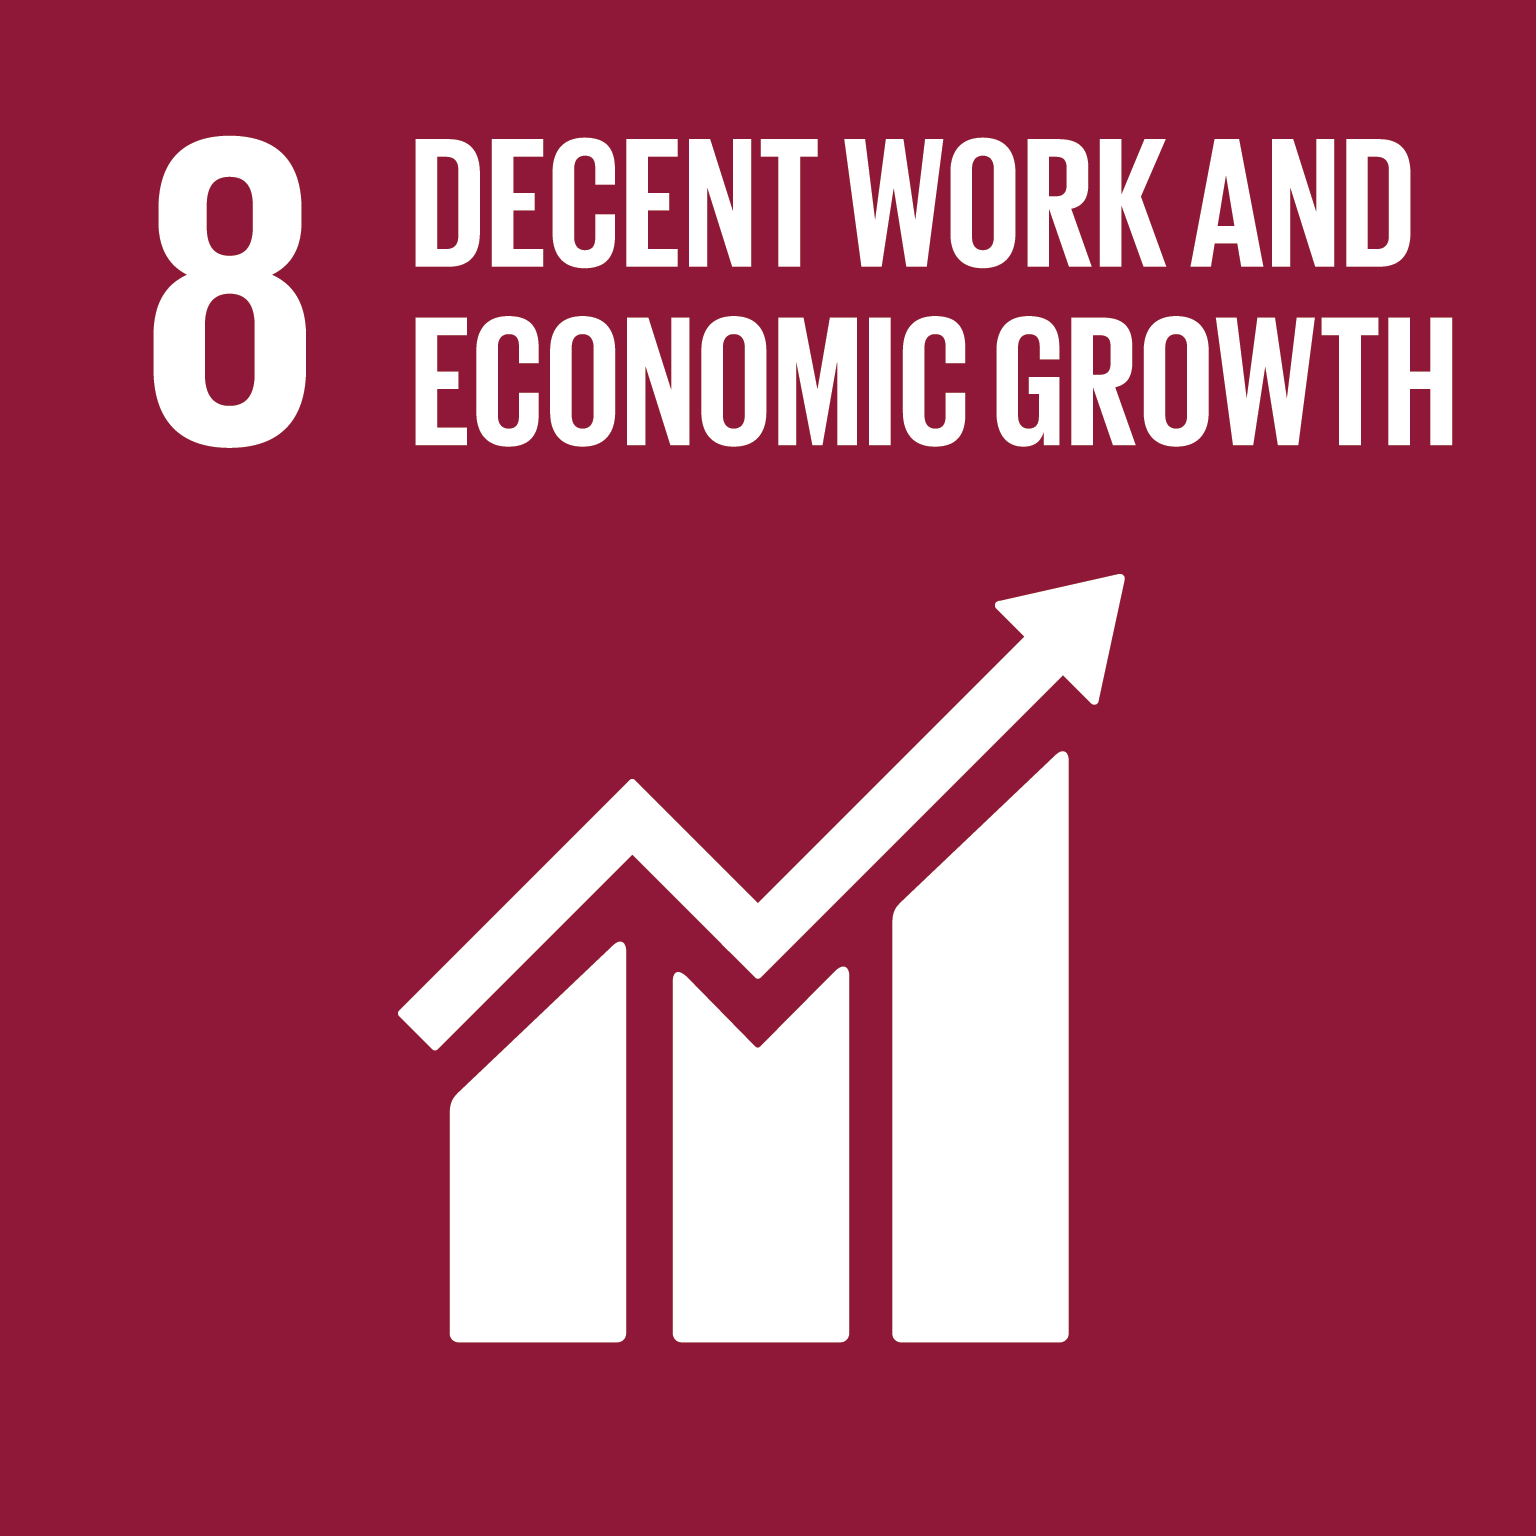 Goal 8 – Decent work and economic growth